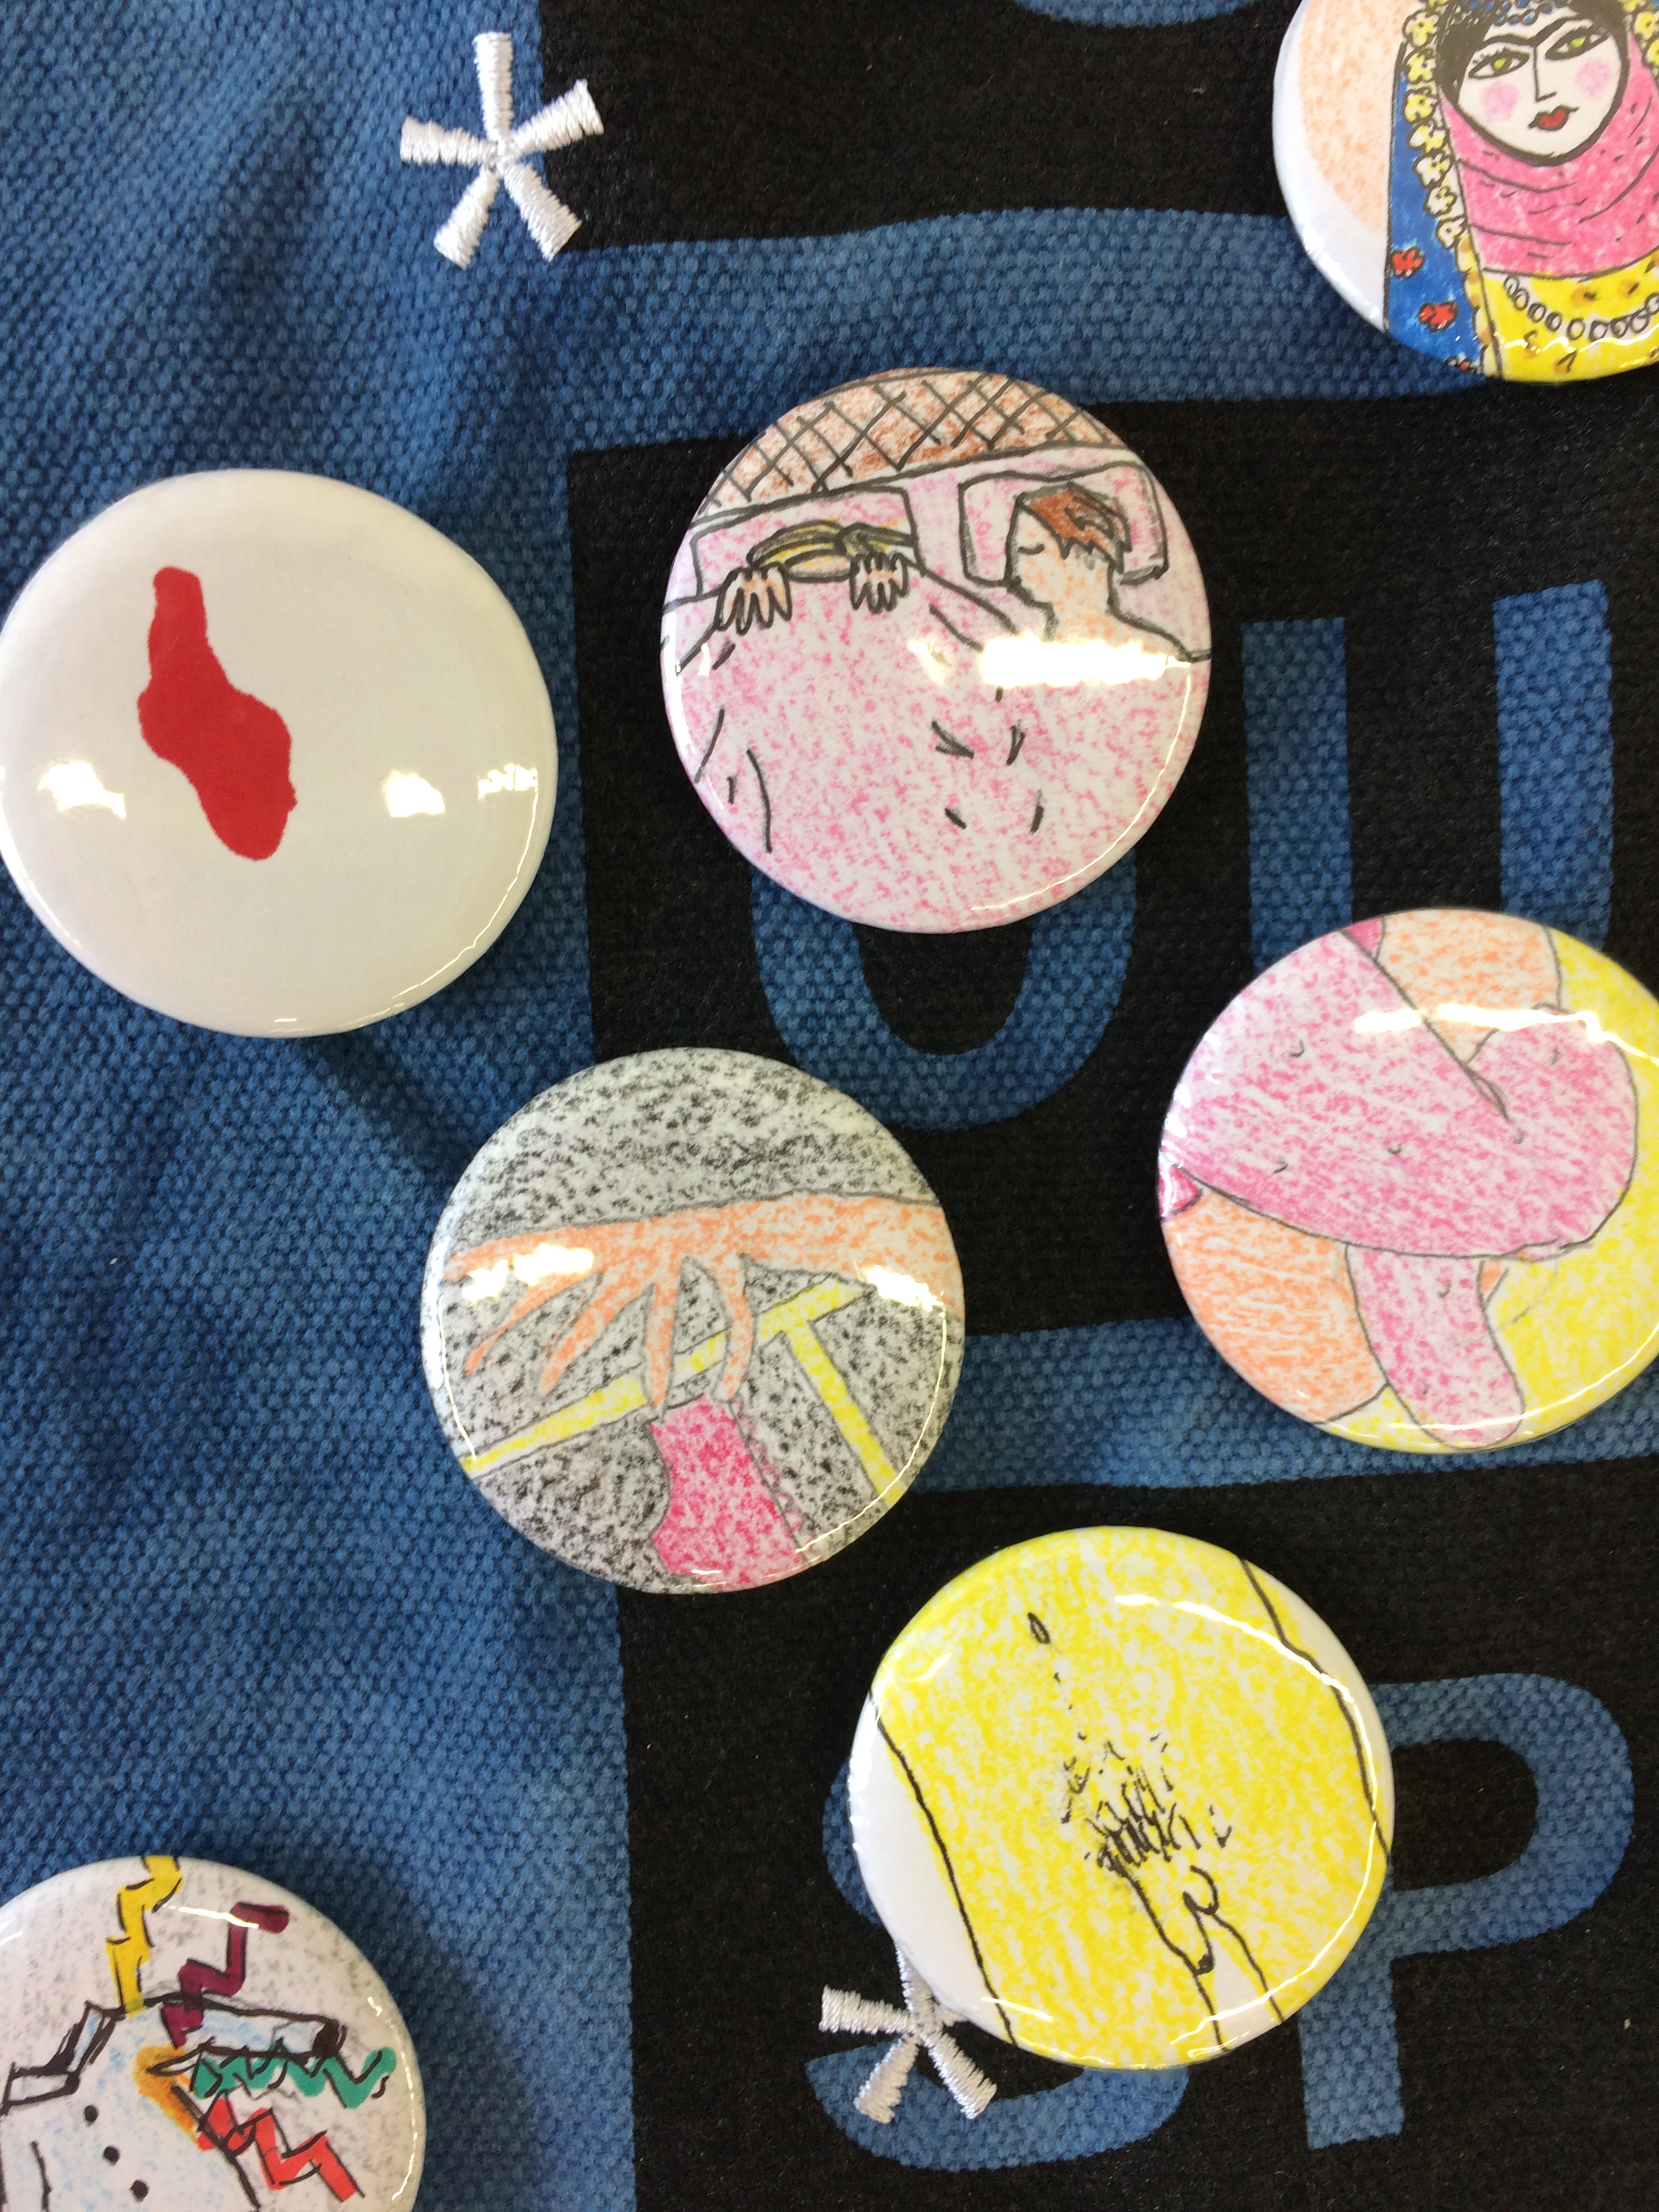 Badges by Tom Aird, Llewellyn Millhouse, Bahar SH and Sarah Thomson.